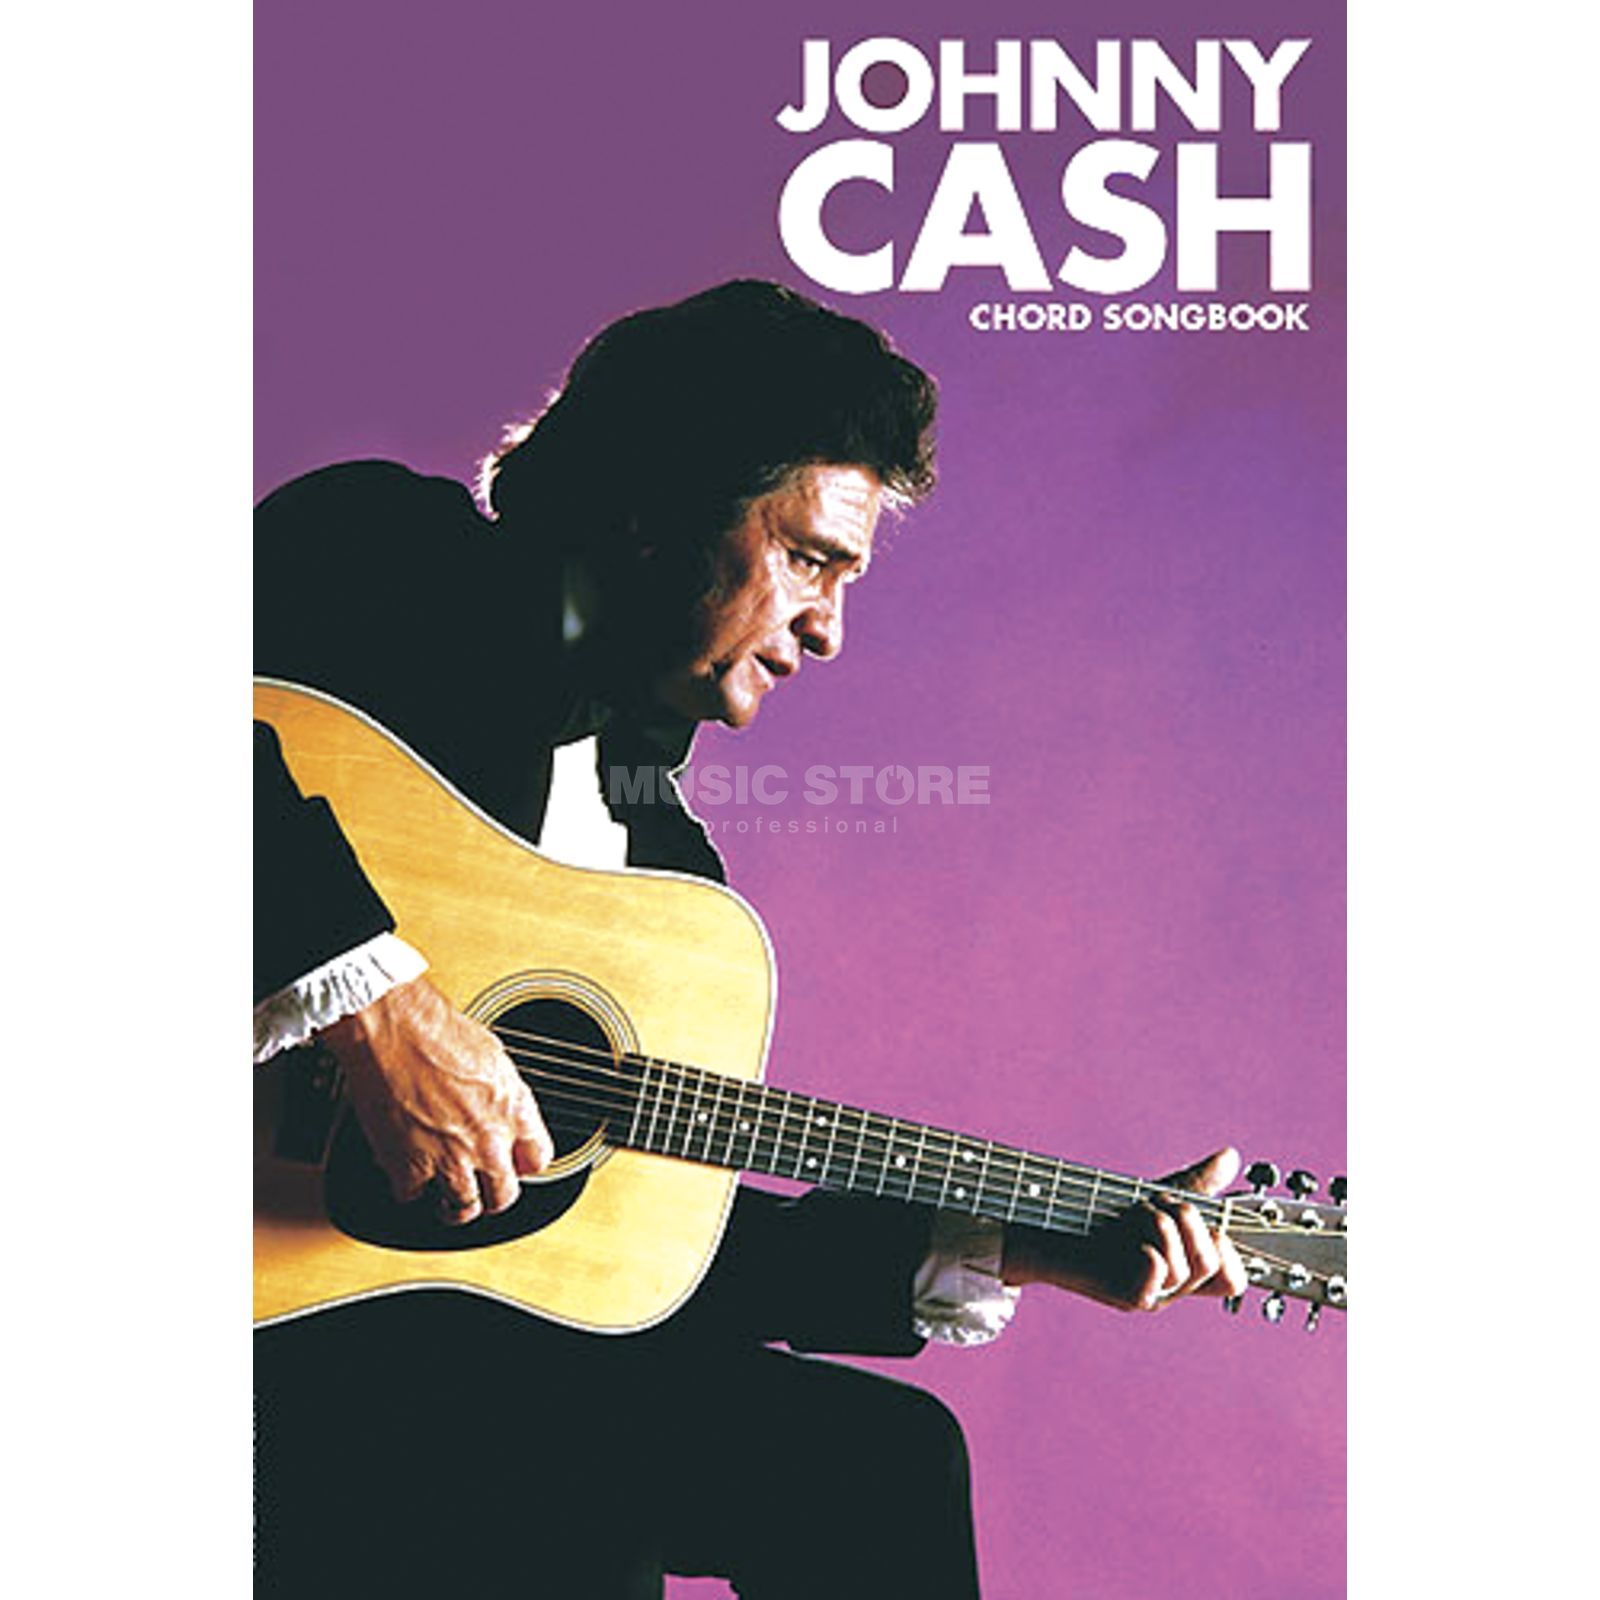 Wise Publications Chord Songbook - Johnny Cash Lyrics & Chords Produktbillede